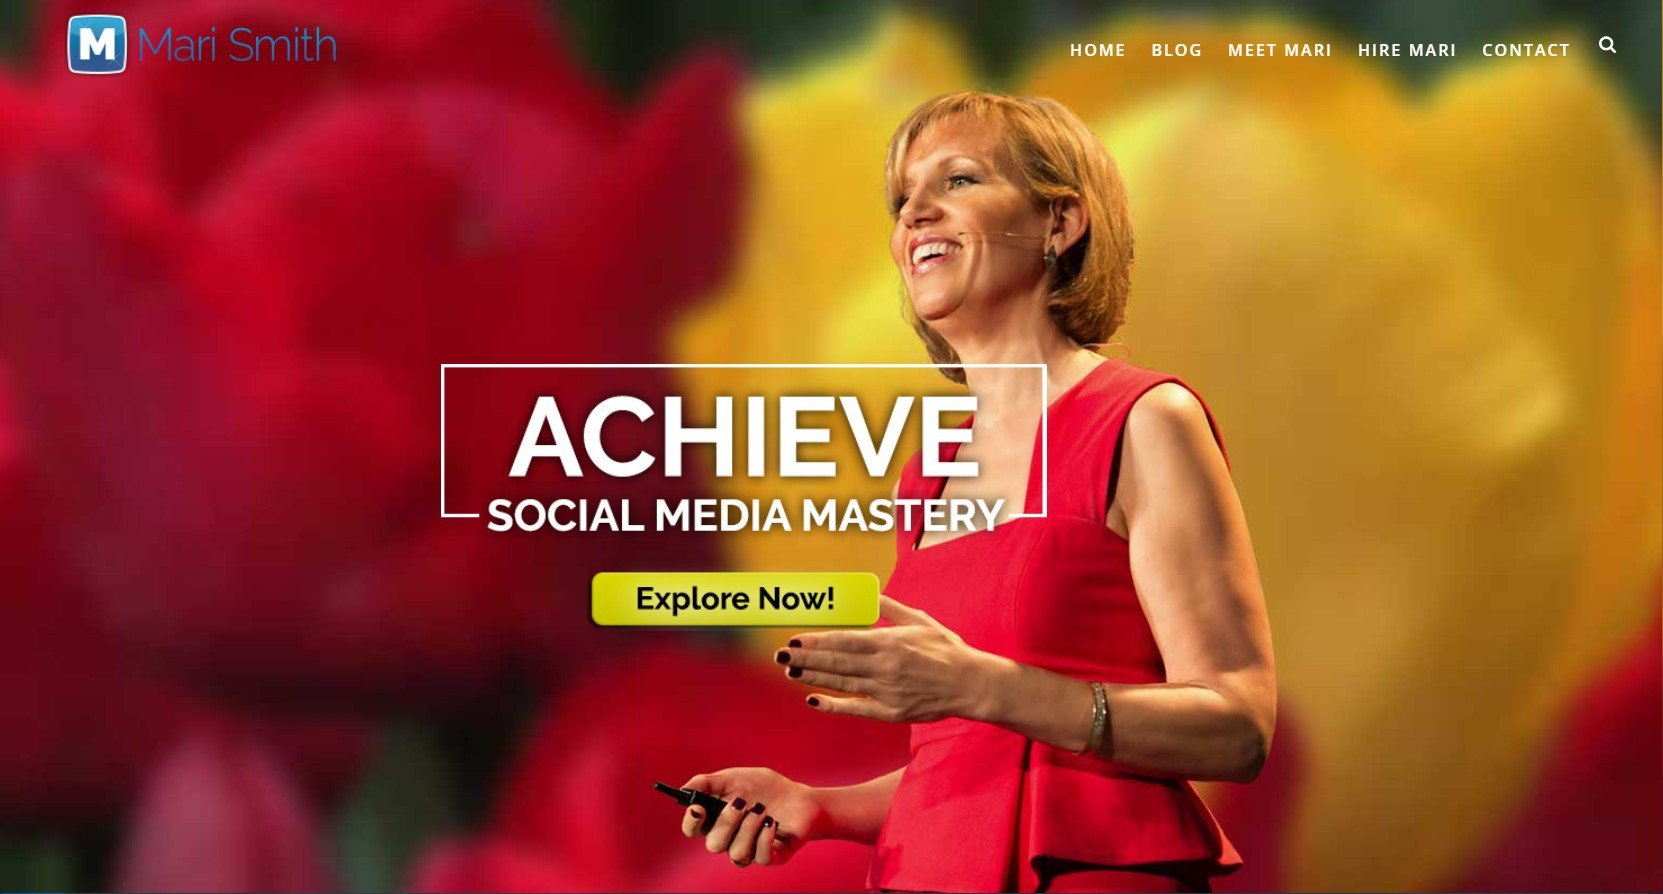 Mari Smith Website